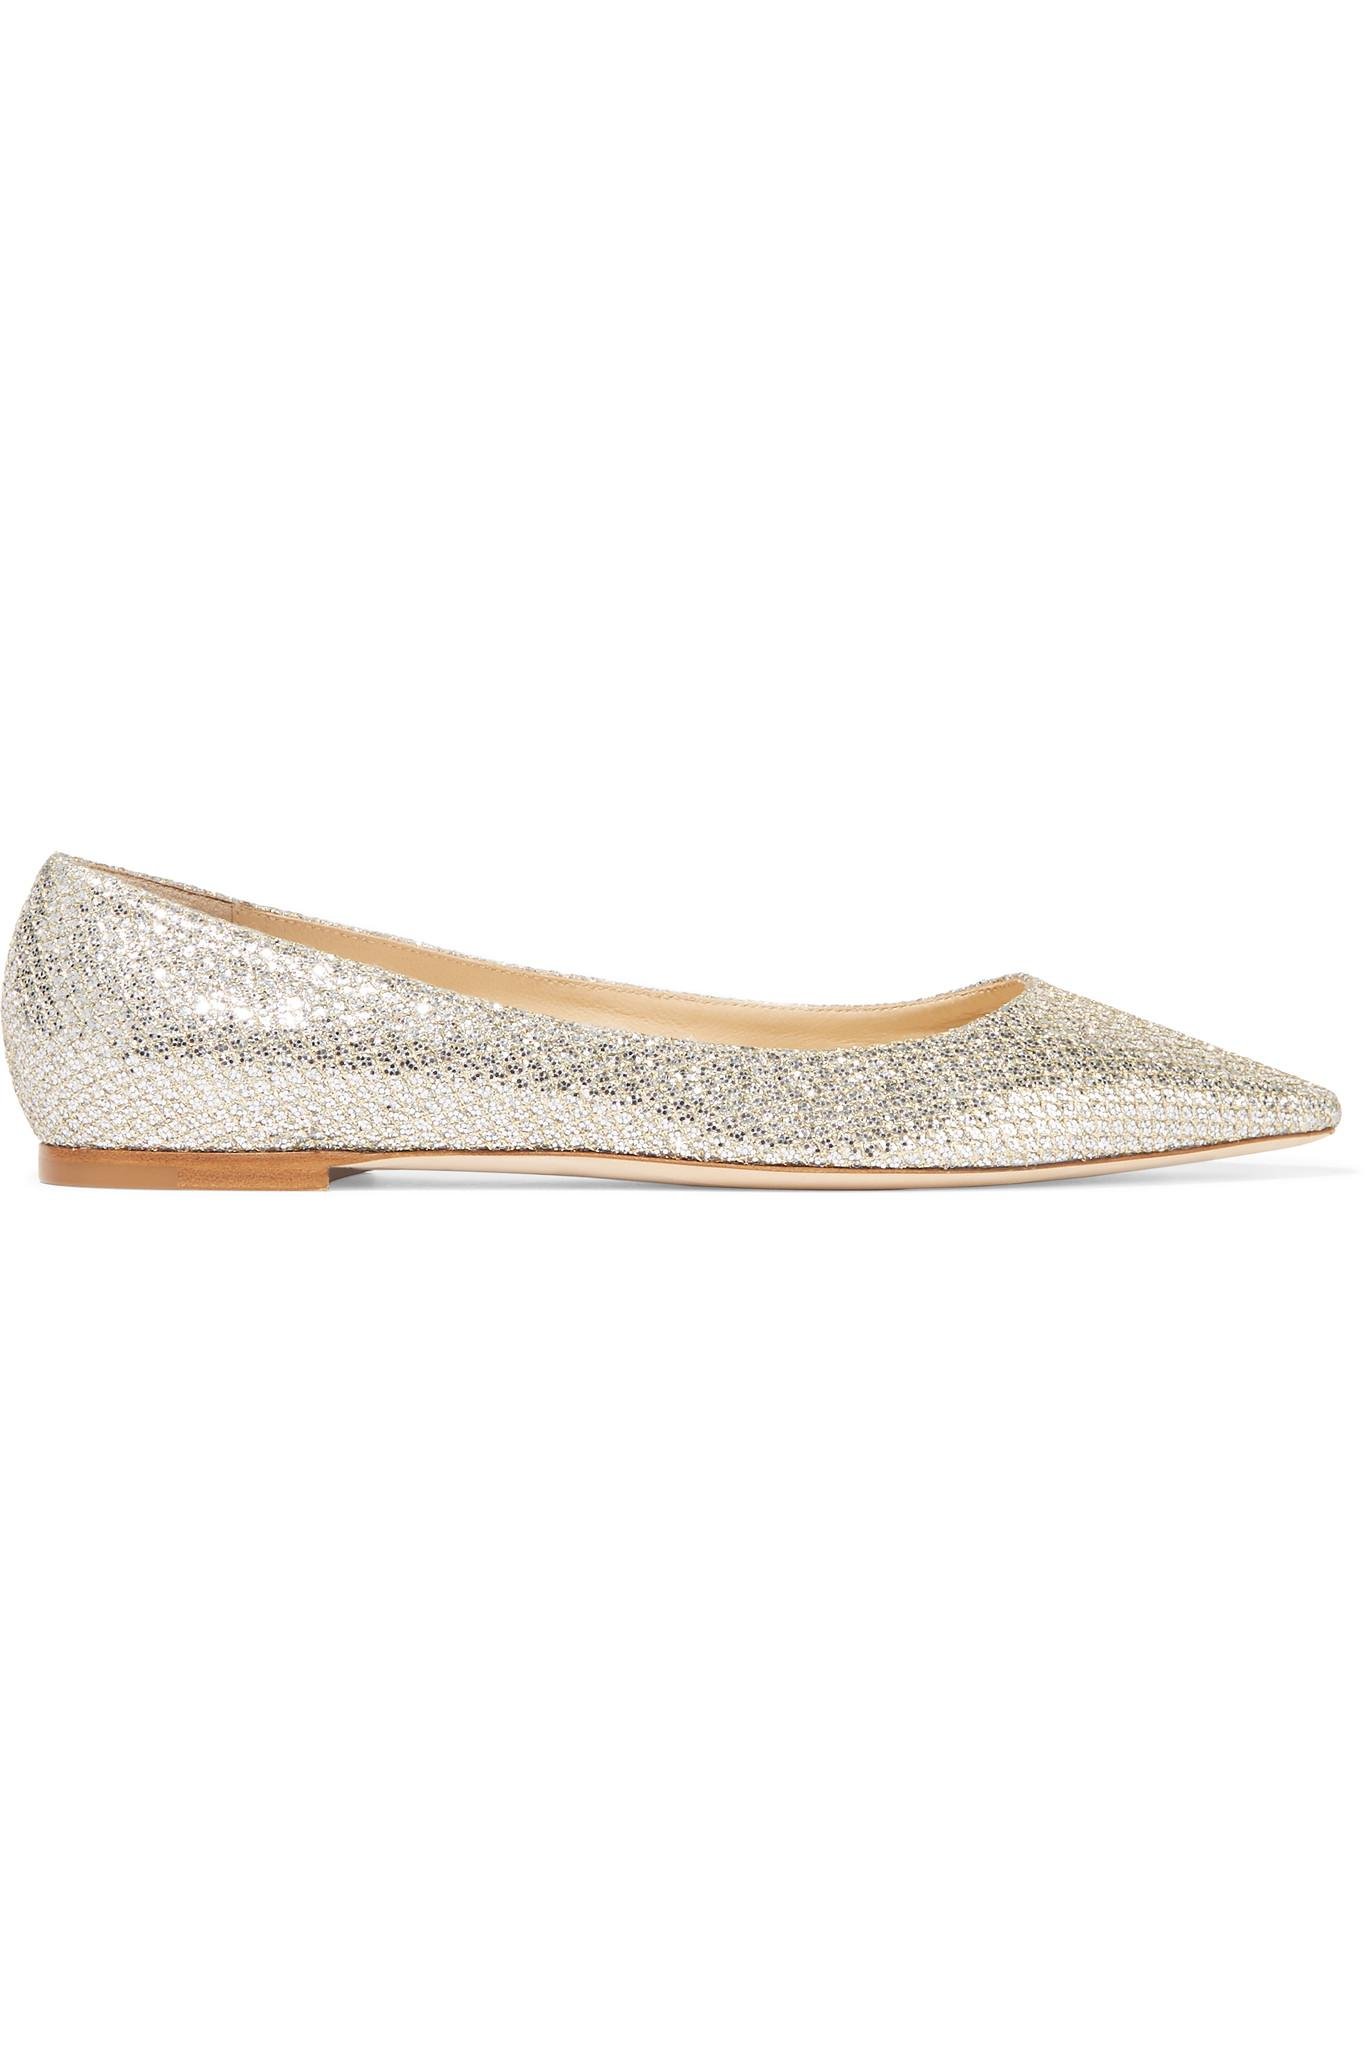 591263d4e56d Gallery. Previously sold at  NET-A-PORTER · Women s Jimmy Choo Glitter  Women s Printed Flats ...